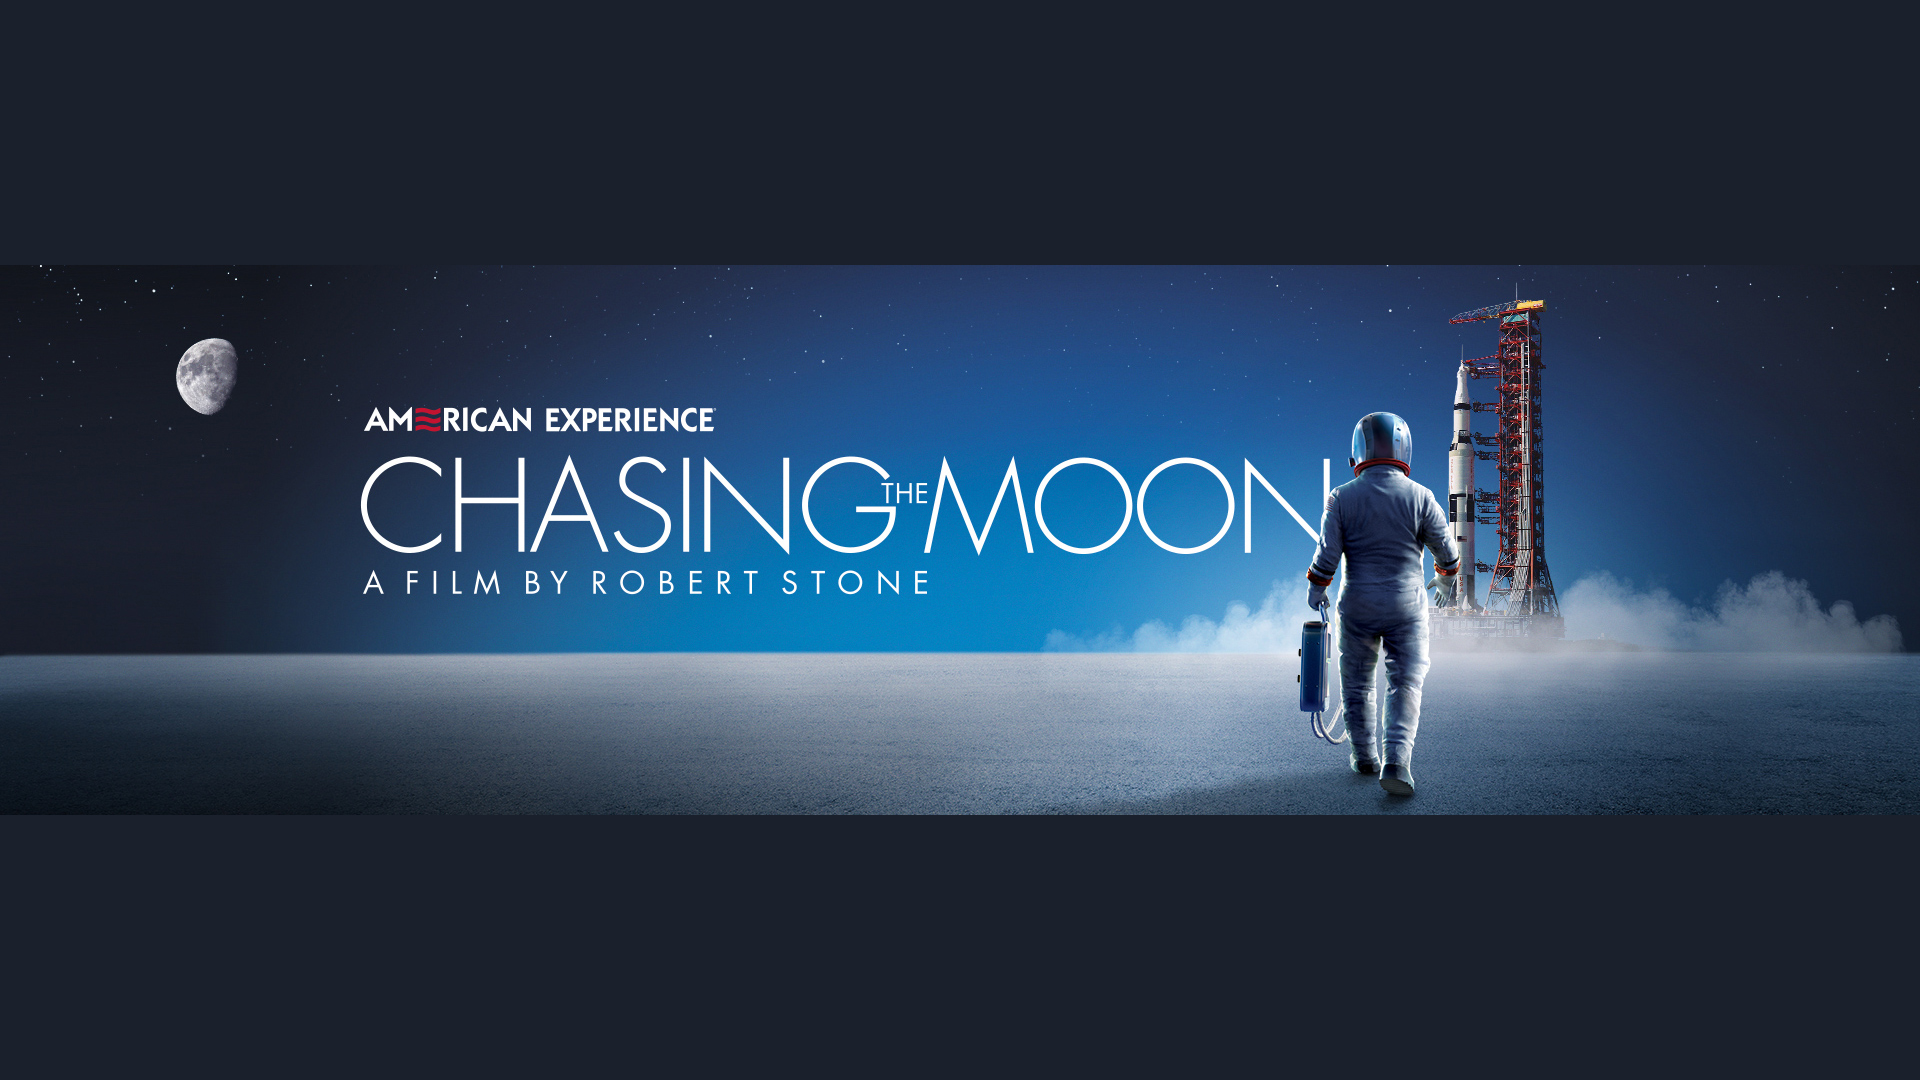 AMERICAN EXPERIENCE: CHASING THE MOON - SCREENINGS - Sunday, July 14 and Monday, July 15.